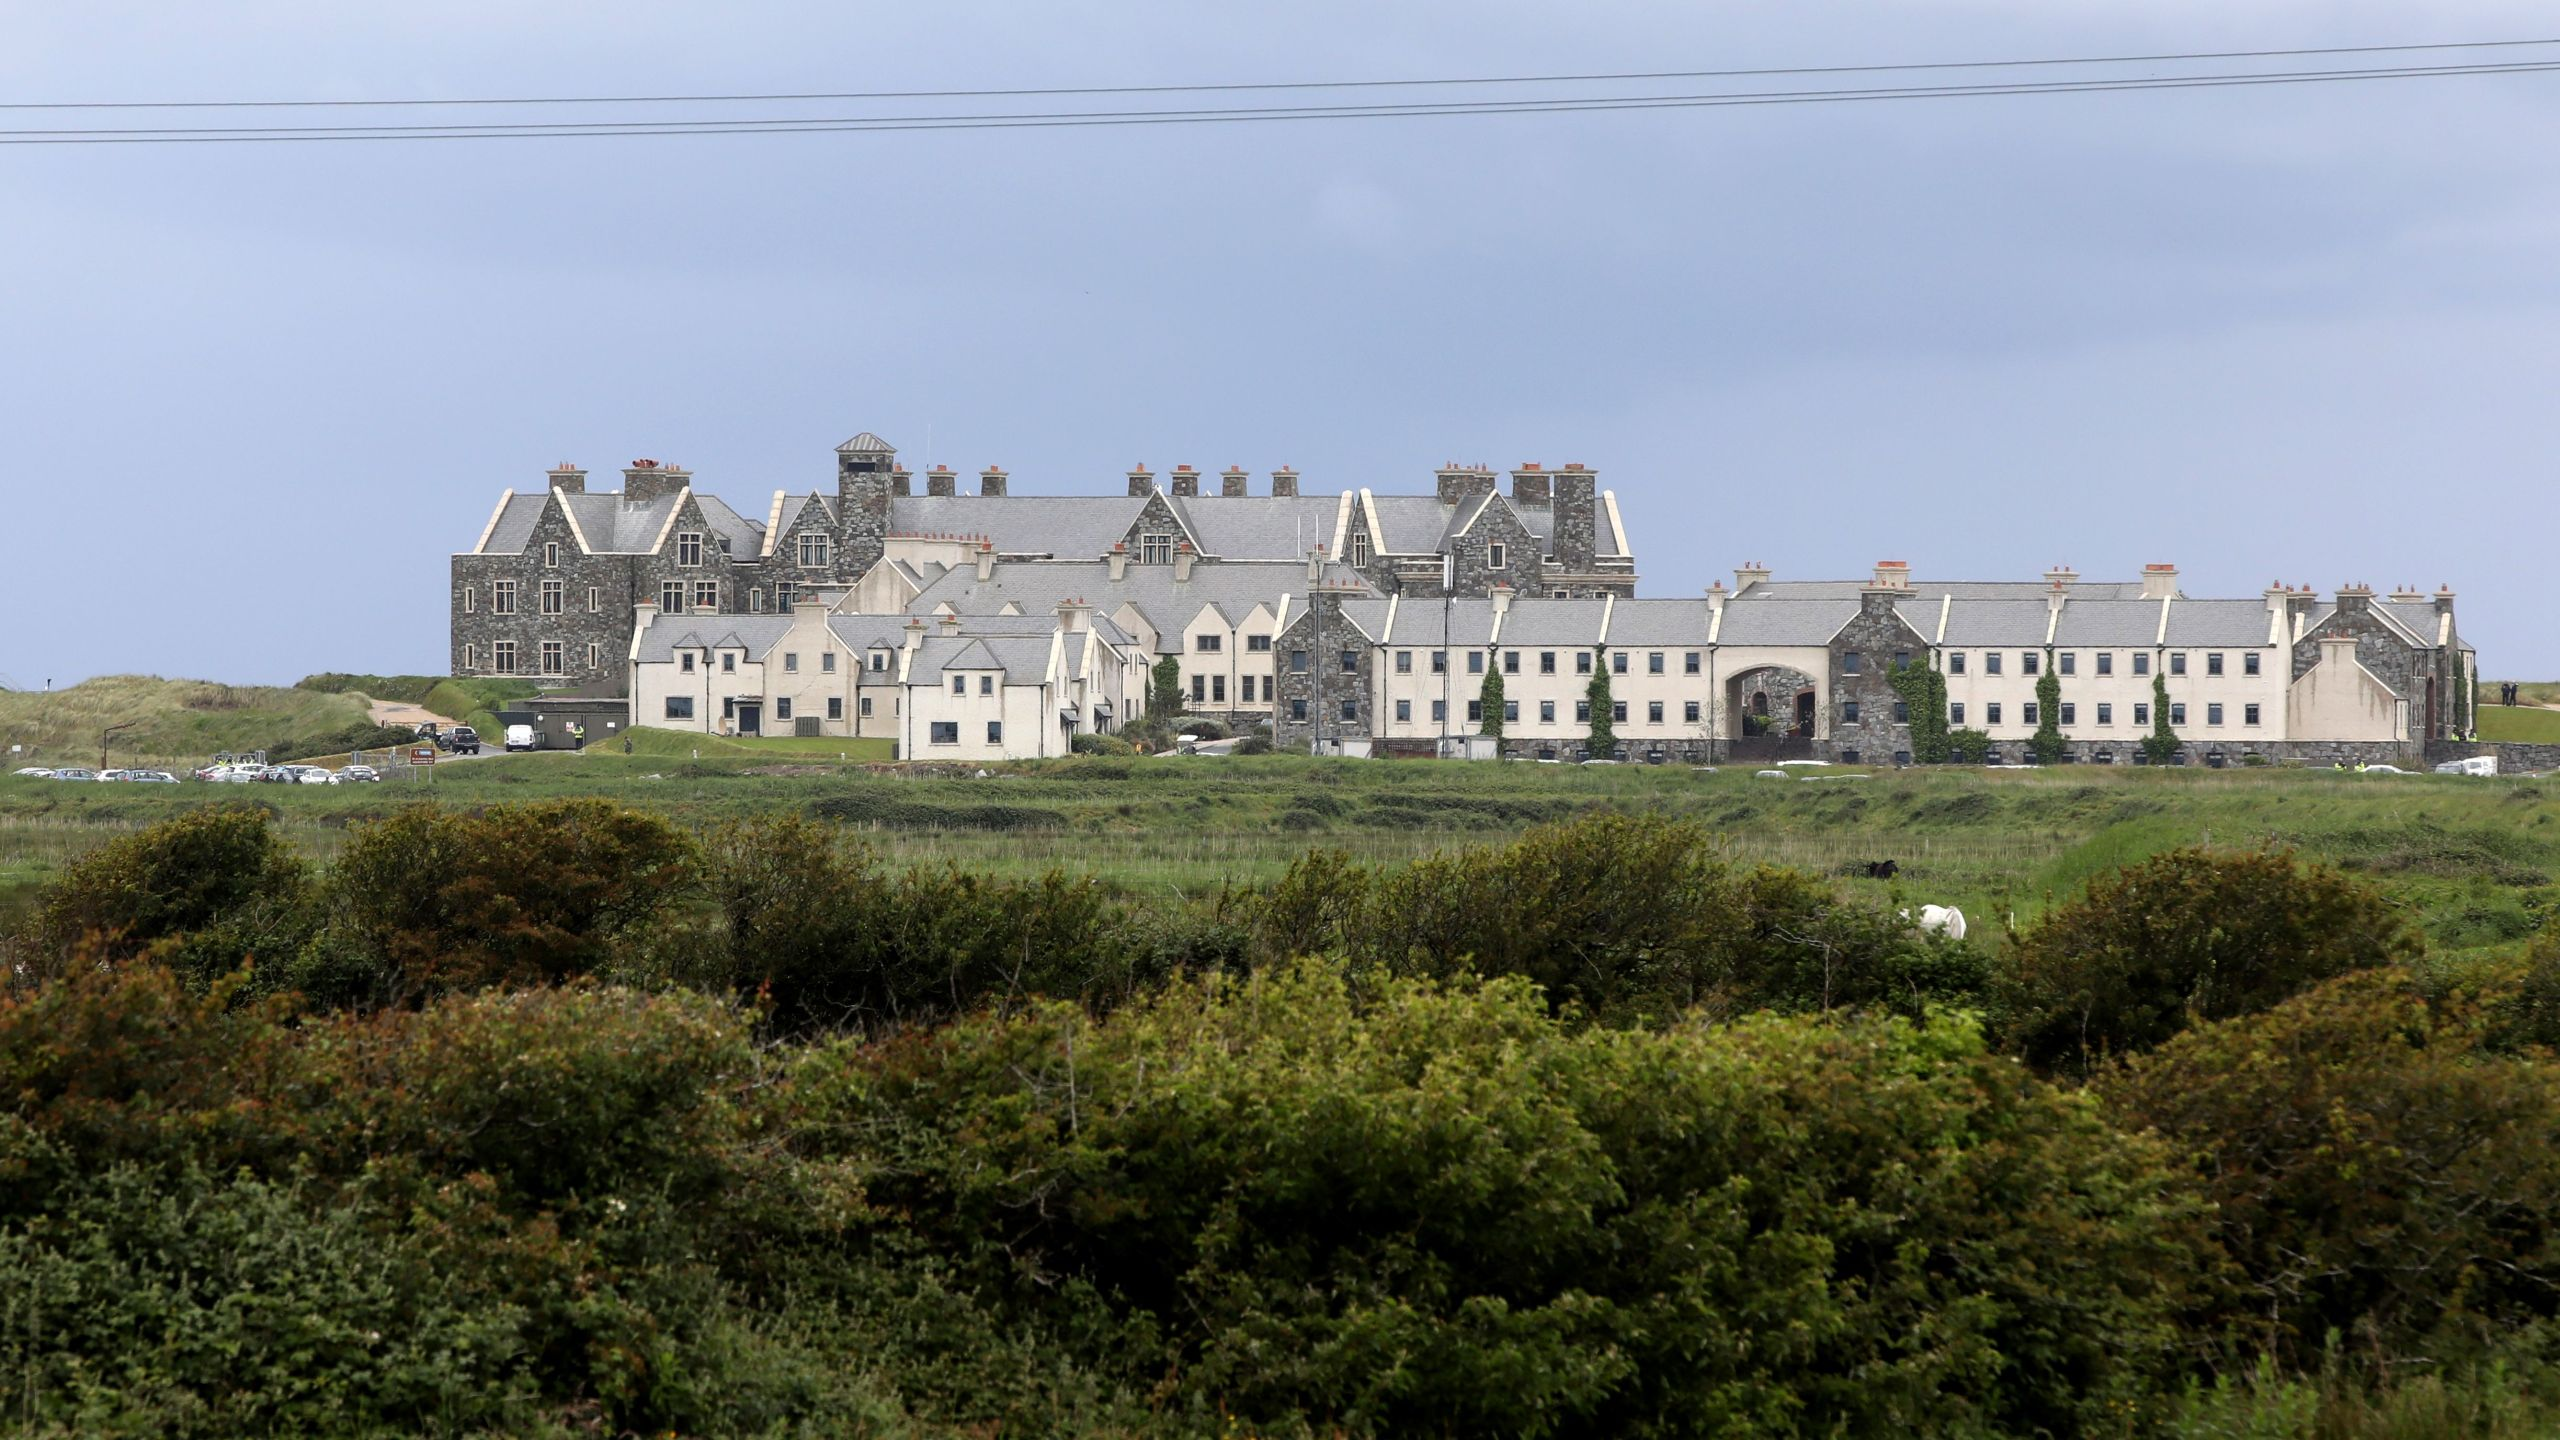 Trump International Golf Links and Hotel in Doonberg, Ireland, is pictured on June 4, 2019, ahead of a visit from U.S. President Donald Trump. (Credit: Paul Faith / AFP / Getty Images)